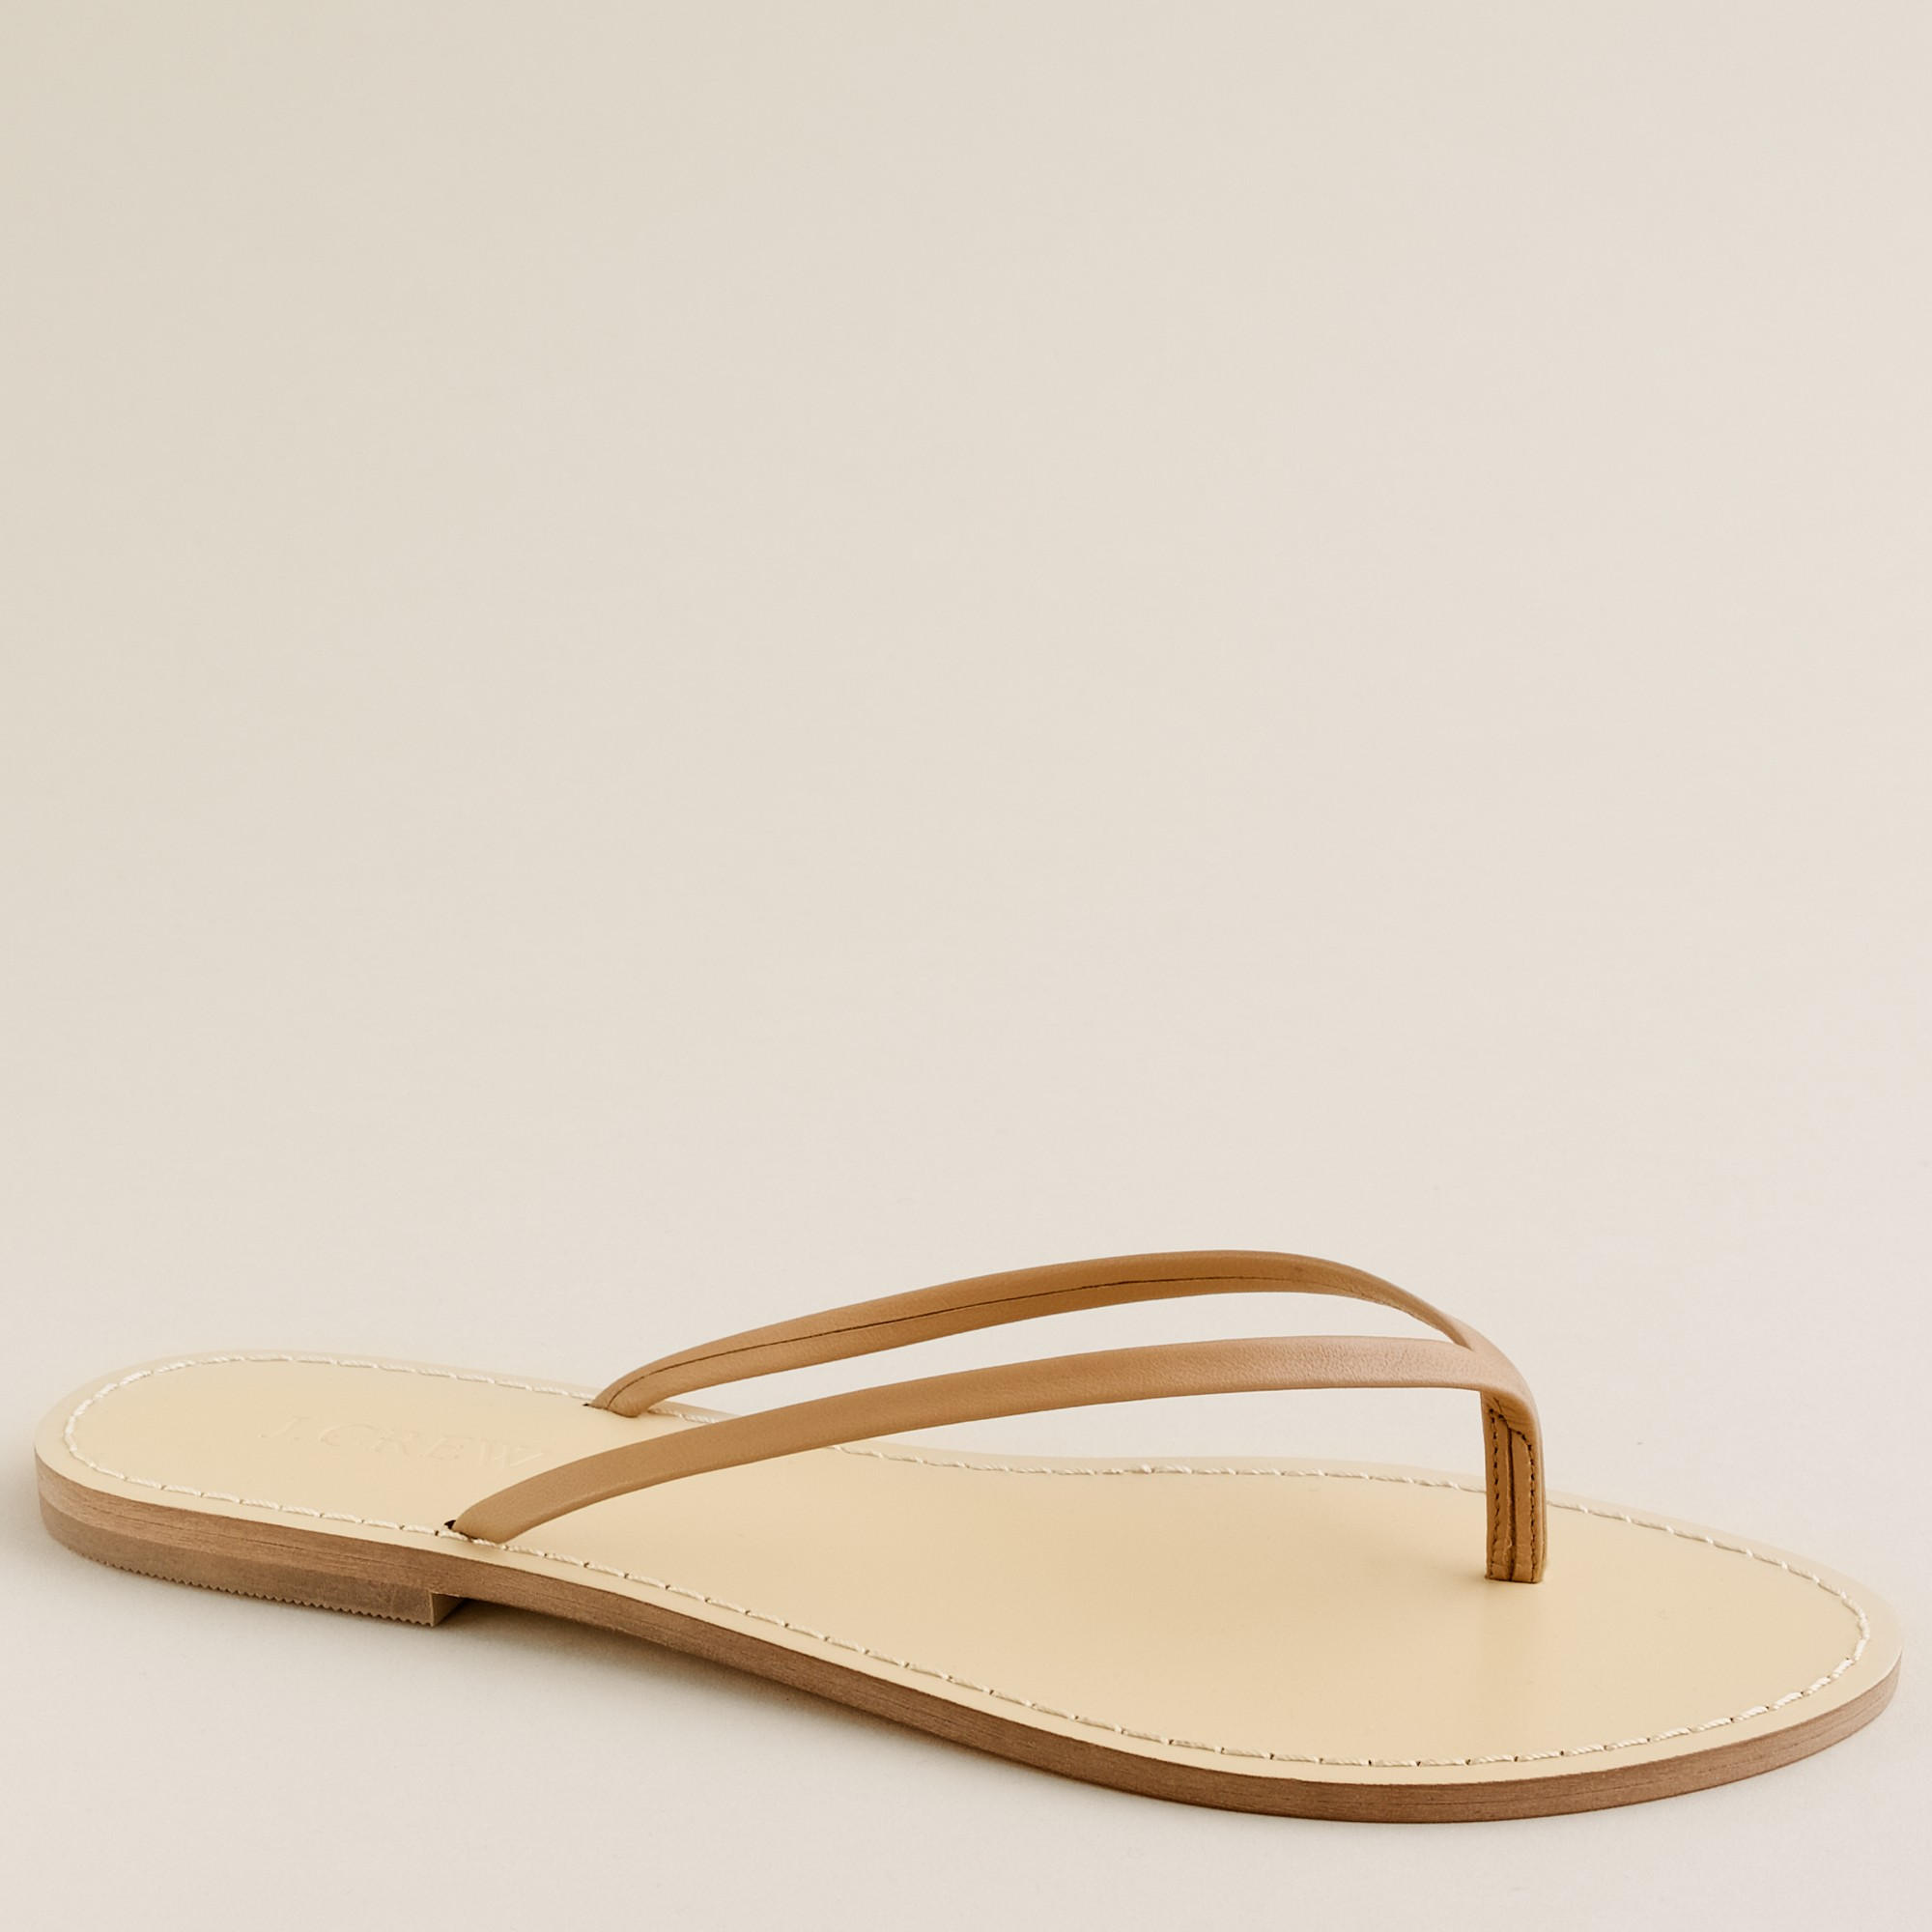 c81b6f60179f Lyst - J.Crew Leather Capri Sandals in Natural